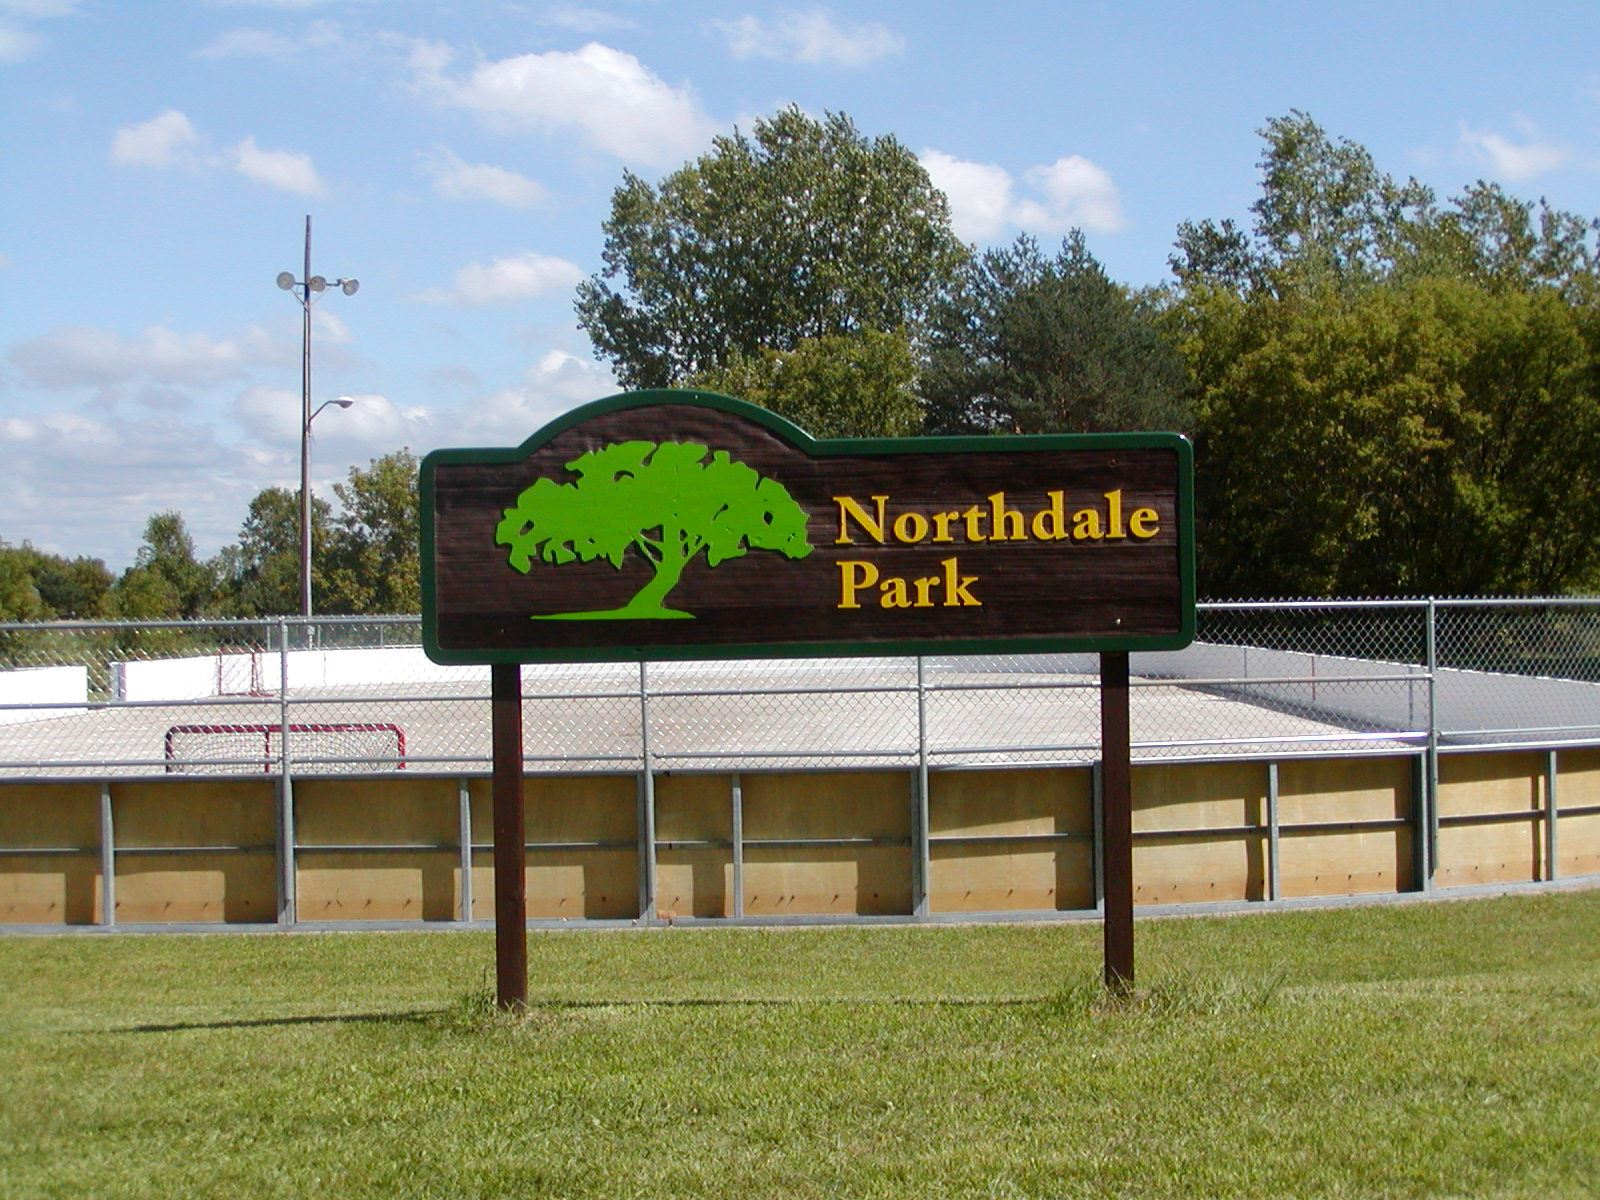 Image of Northdale Park Sign and Hockey Rink